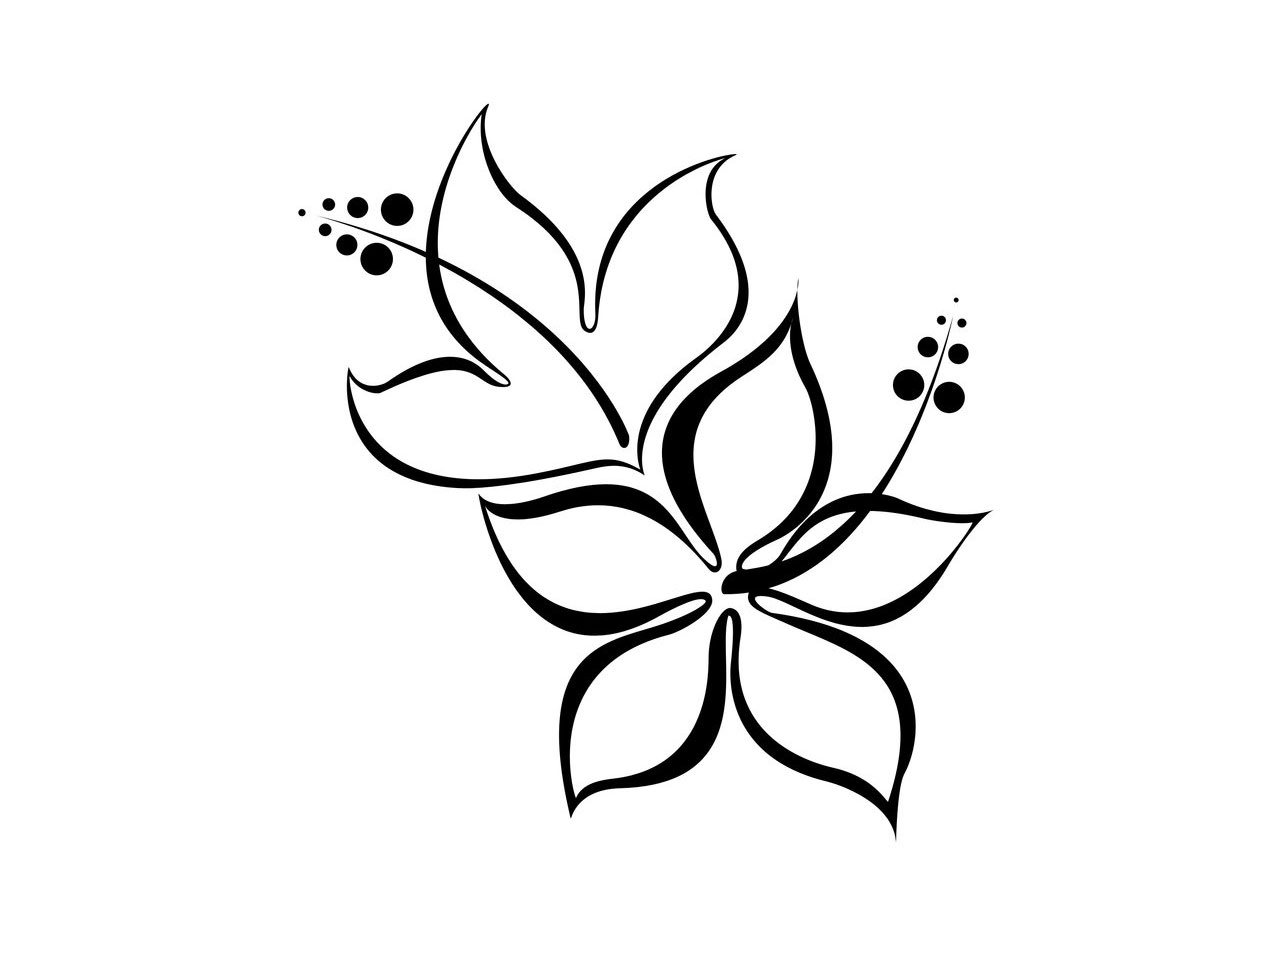 new fairy moon and stars tattoo designs all tattoos for men